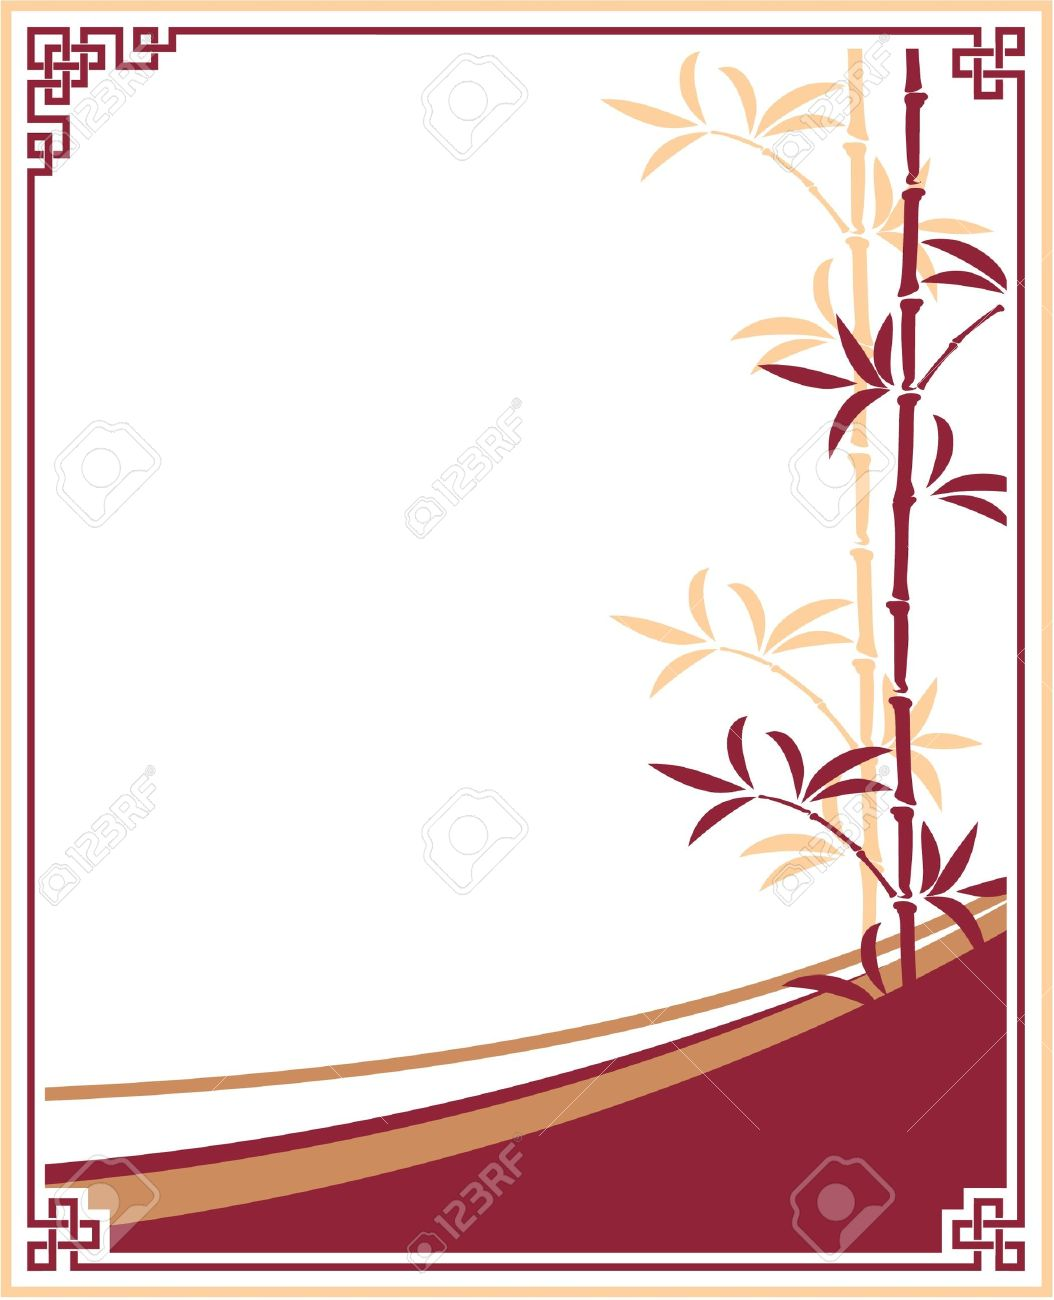 Oriental - Chinese - Template Frame with Bamboo Stock Vector - 12826116